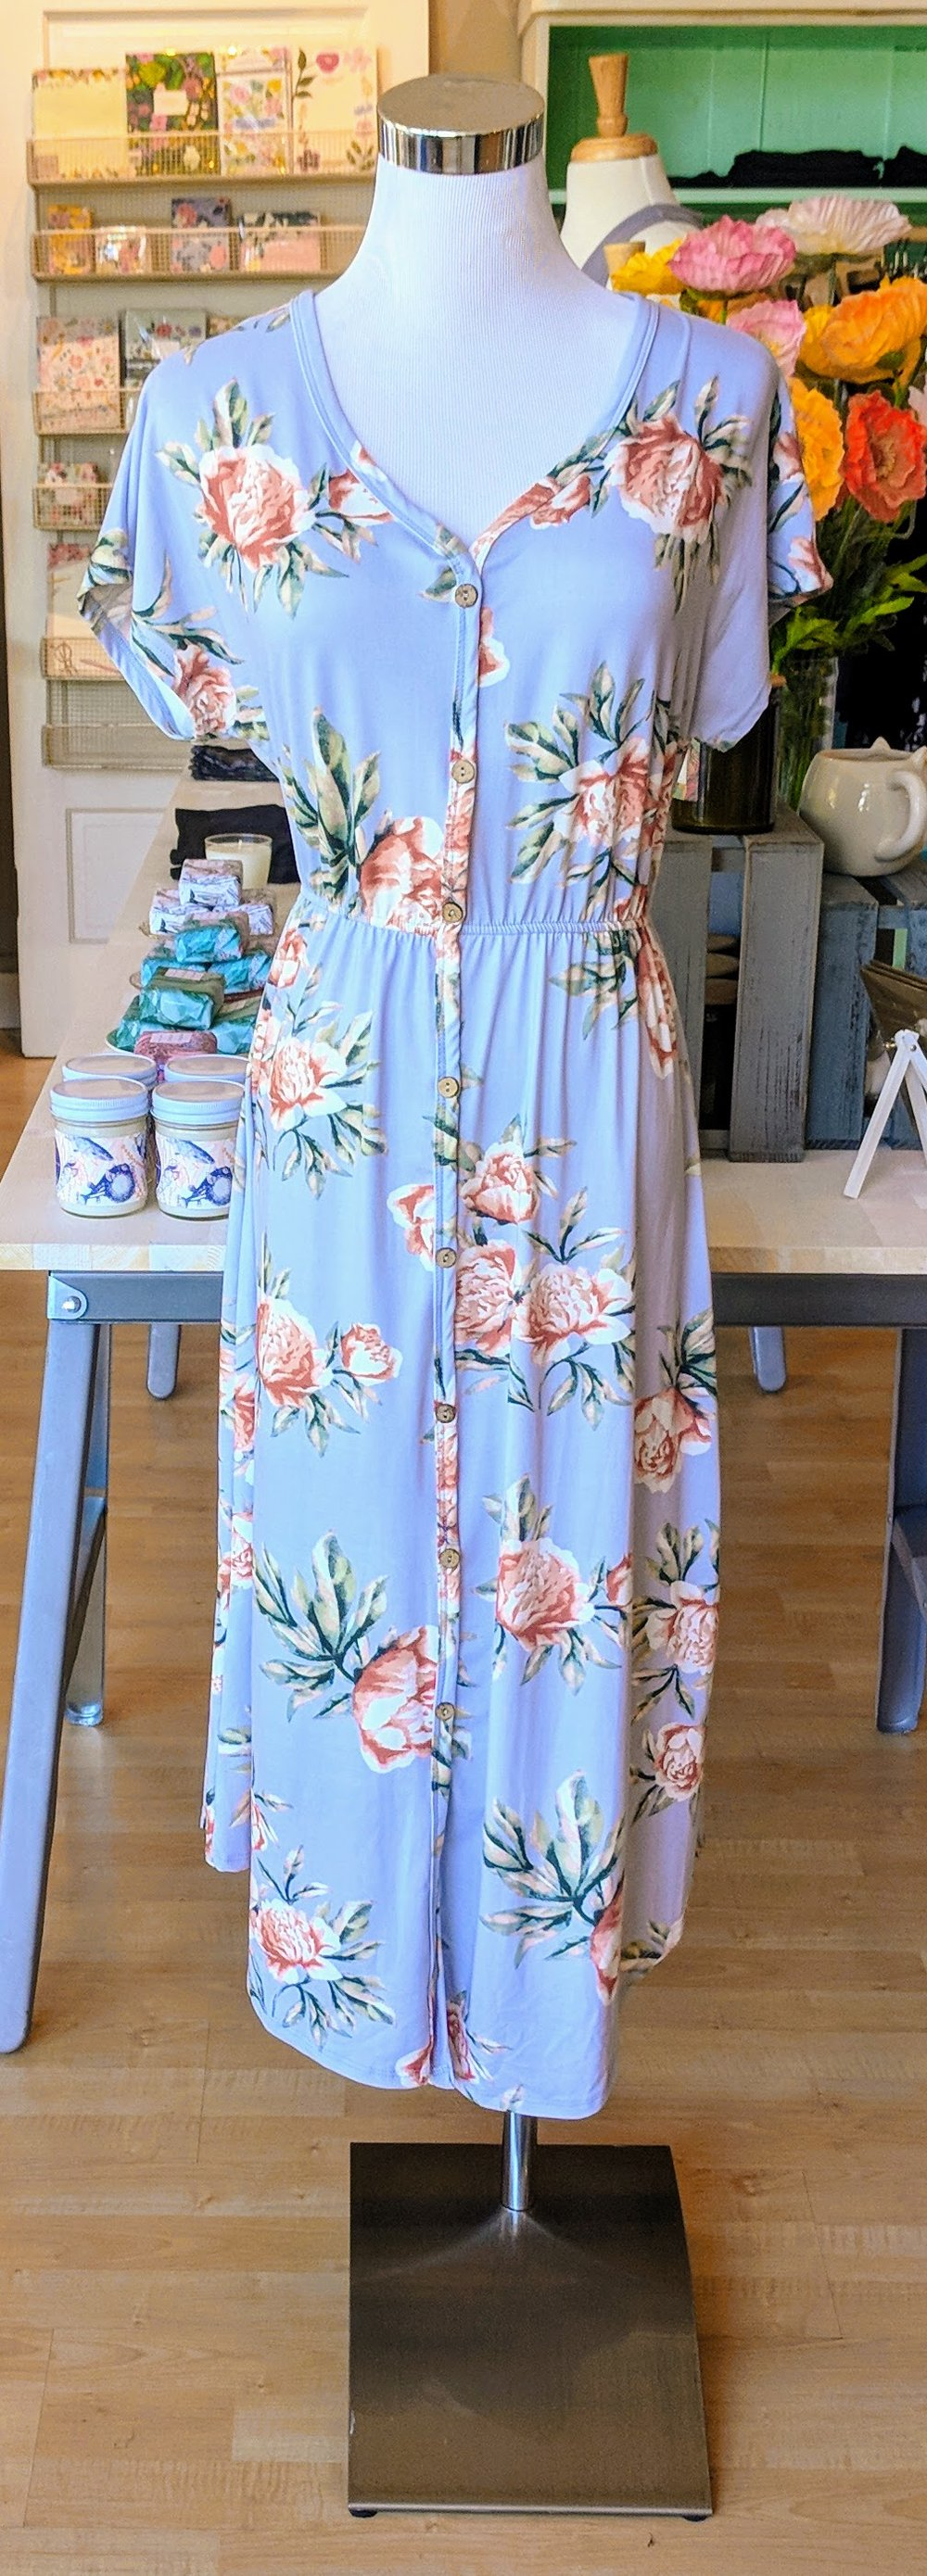 Pastel floral midi dress with button detail front.